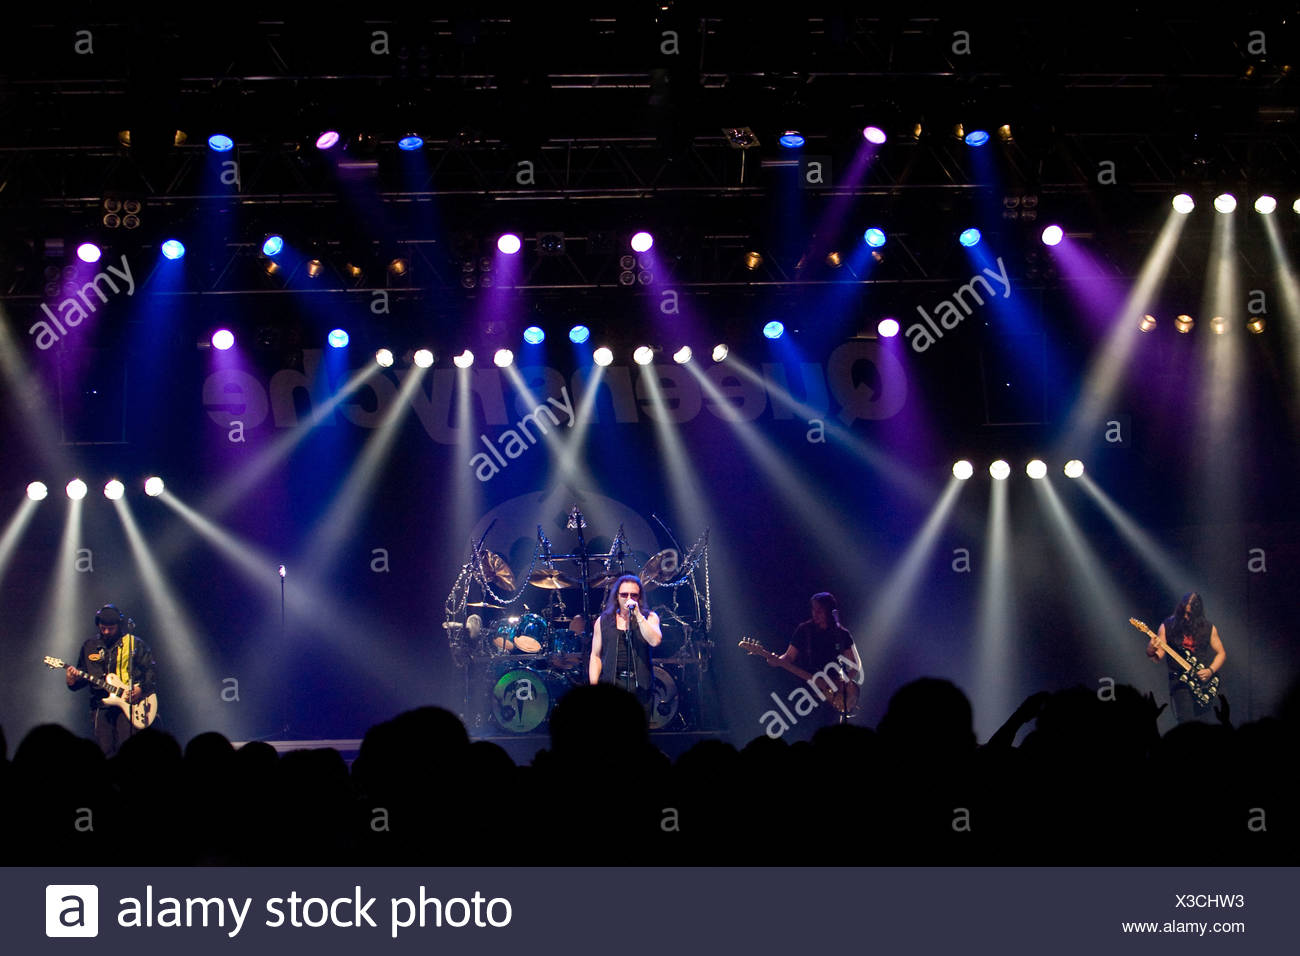 The American Progressive Metal band Queensryche live at Rock Sound Festival in Huttwil, Switzerland, Europe - Stock Image